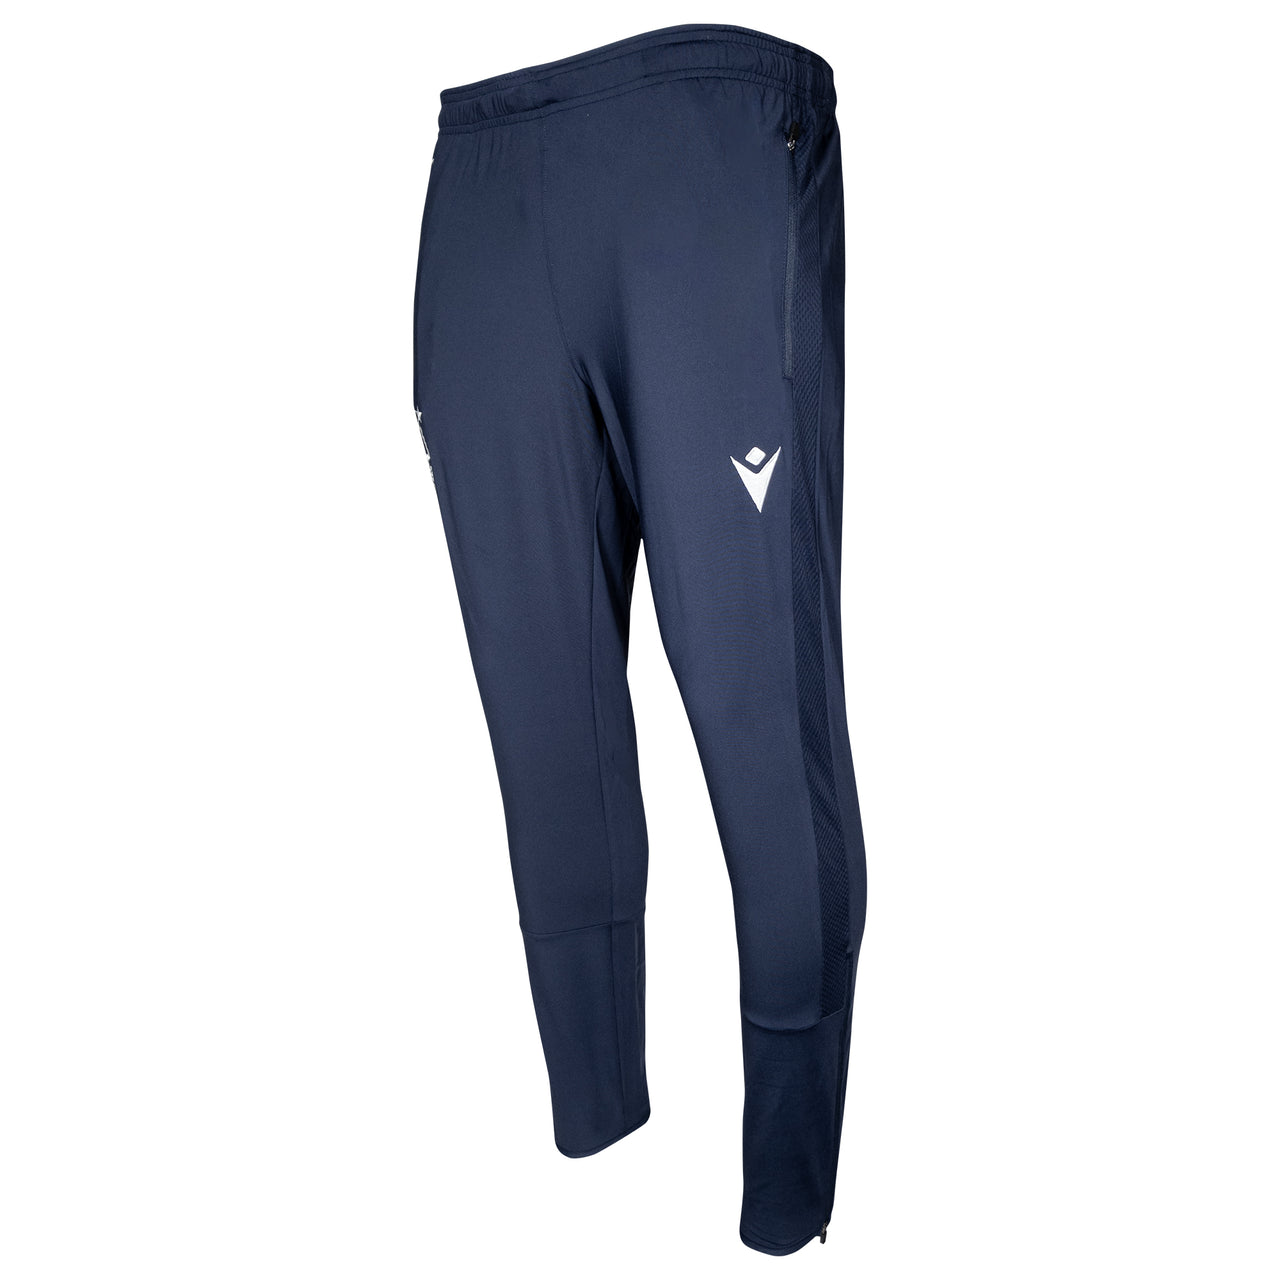 NFFC Mens Training Pant 2020/21